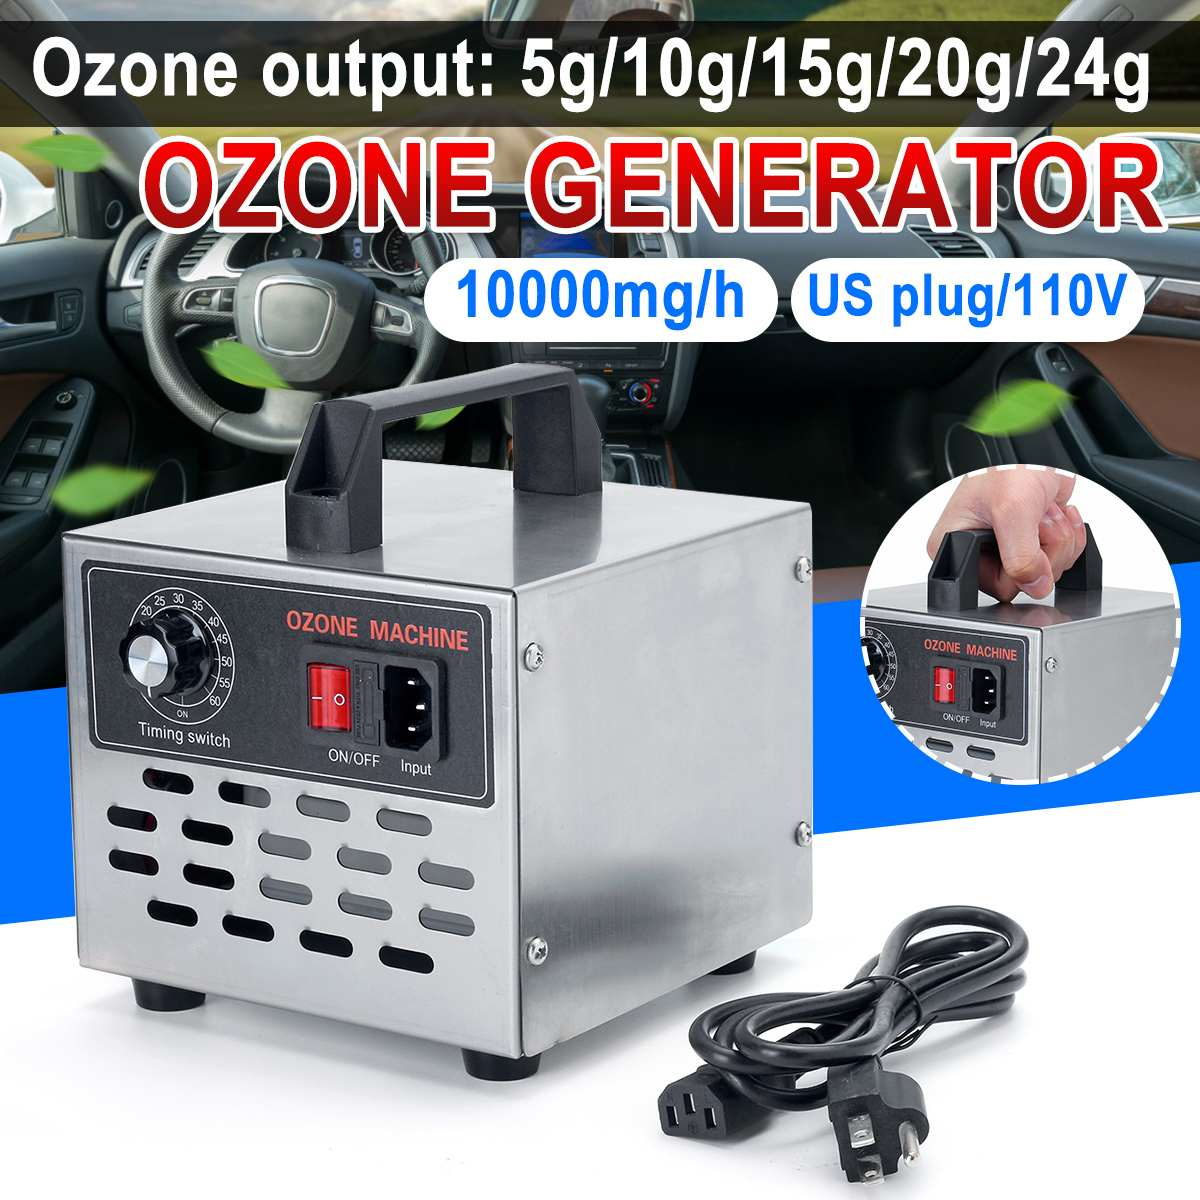 5g-24g Ozone Generator Ozone Machine Stainless Steel Air Purifier Air Cleaner Disinfection Cleaning